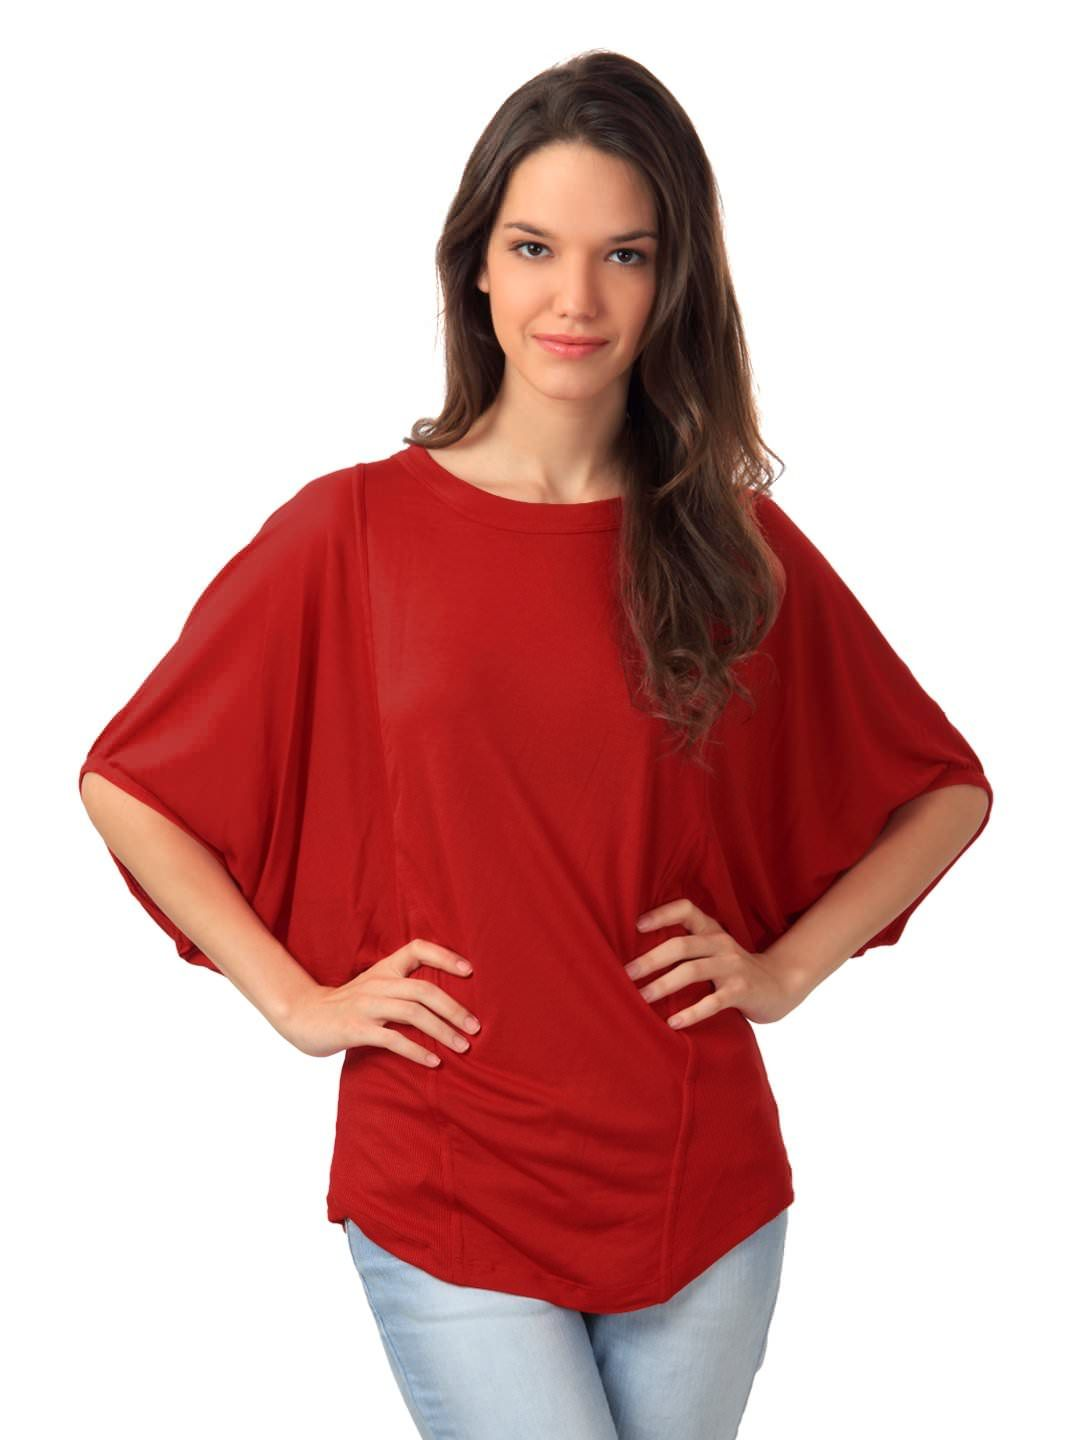 ceca56899e7be United Colors of Benetton Women Red Top